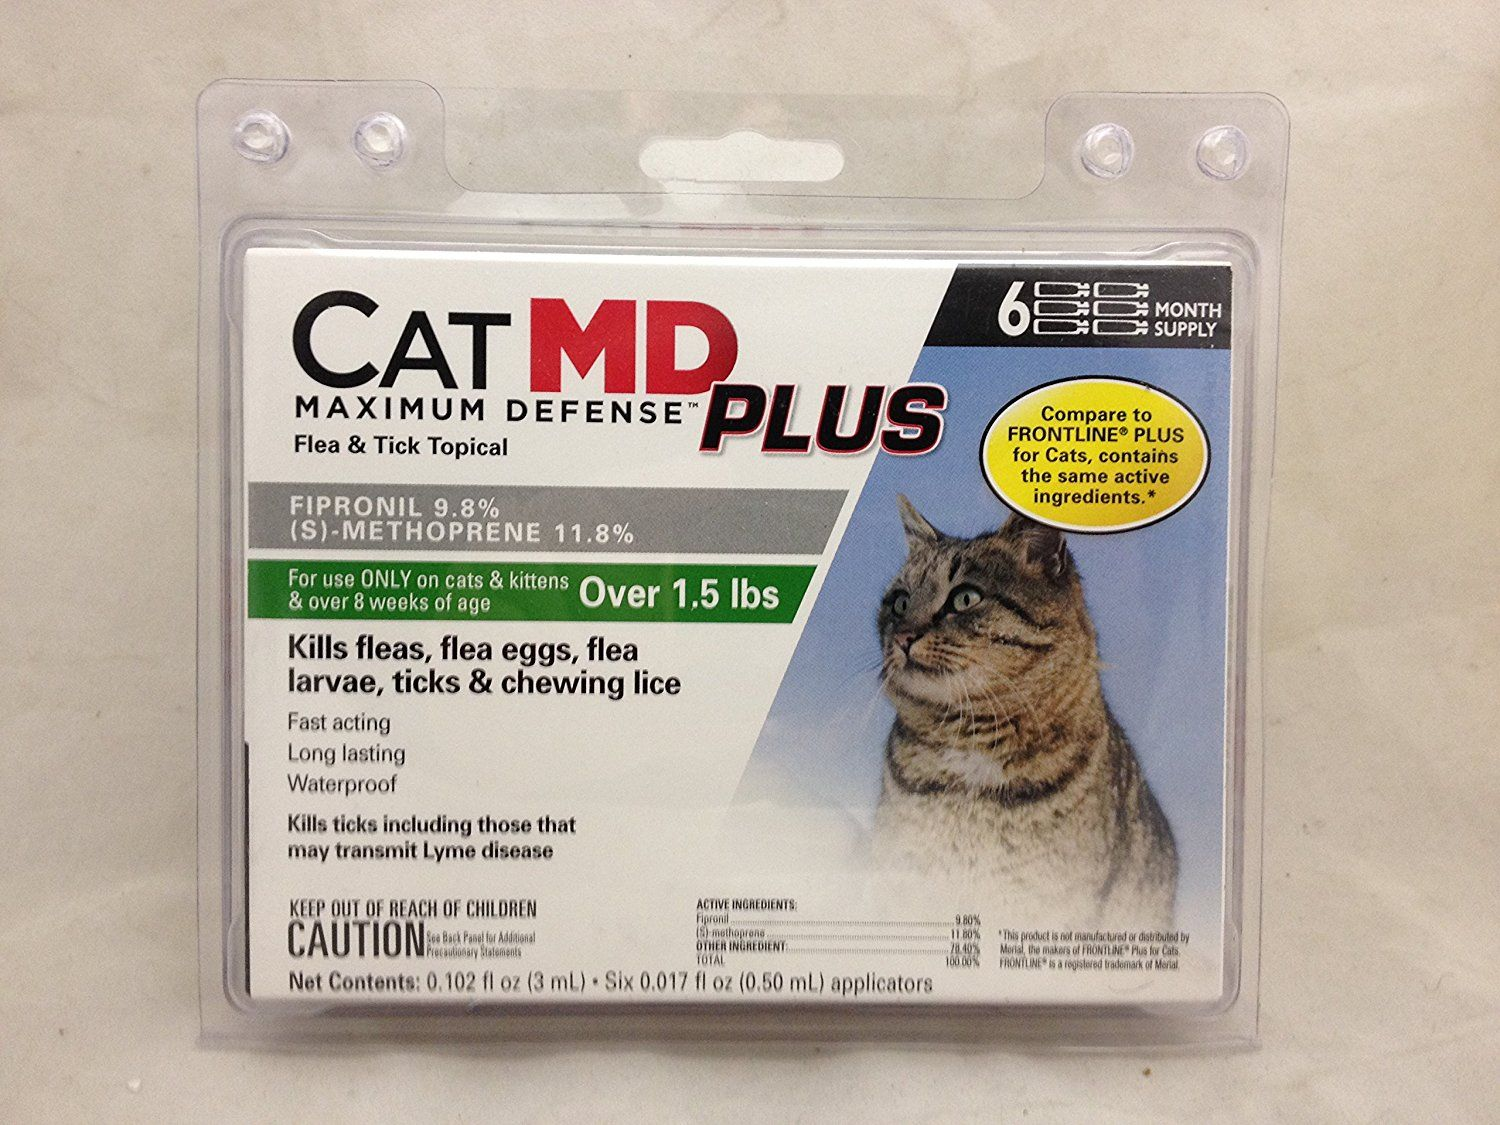 Catmd Max Defense Plus Flea And Tick Topica For Cats Over 1 5 Lbs 6 Month Supply You Can Find More Details By Vis Flea And Tick Fleas Frontline For Cats